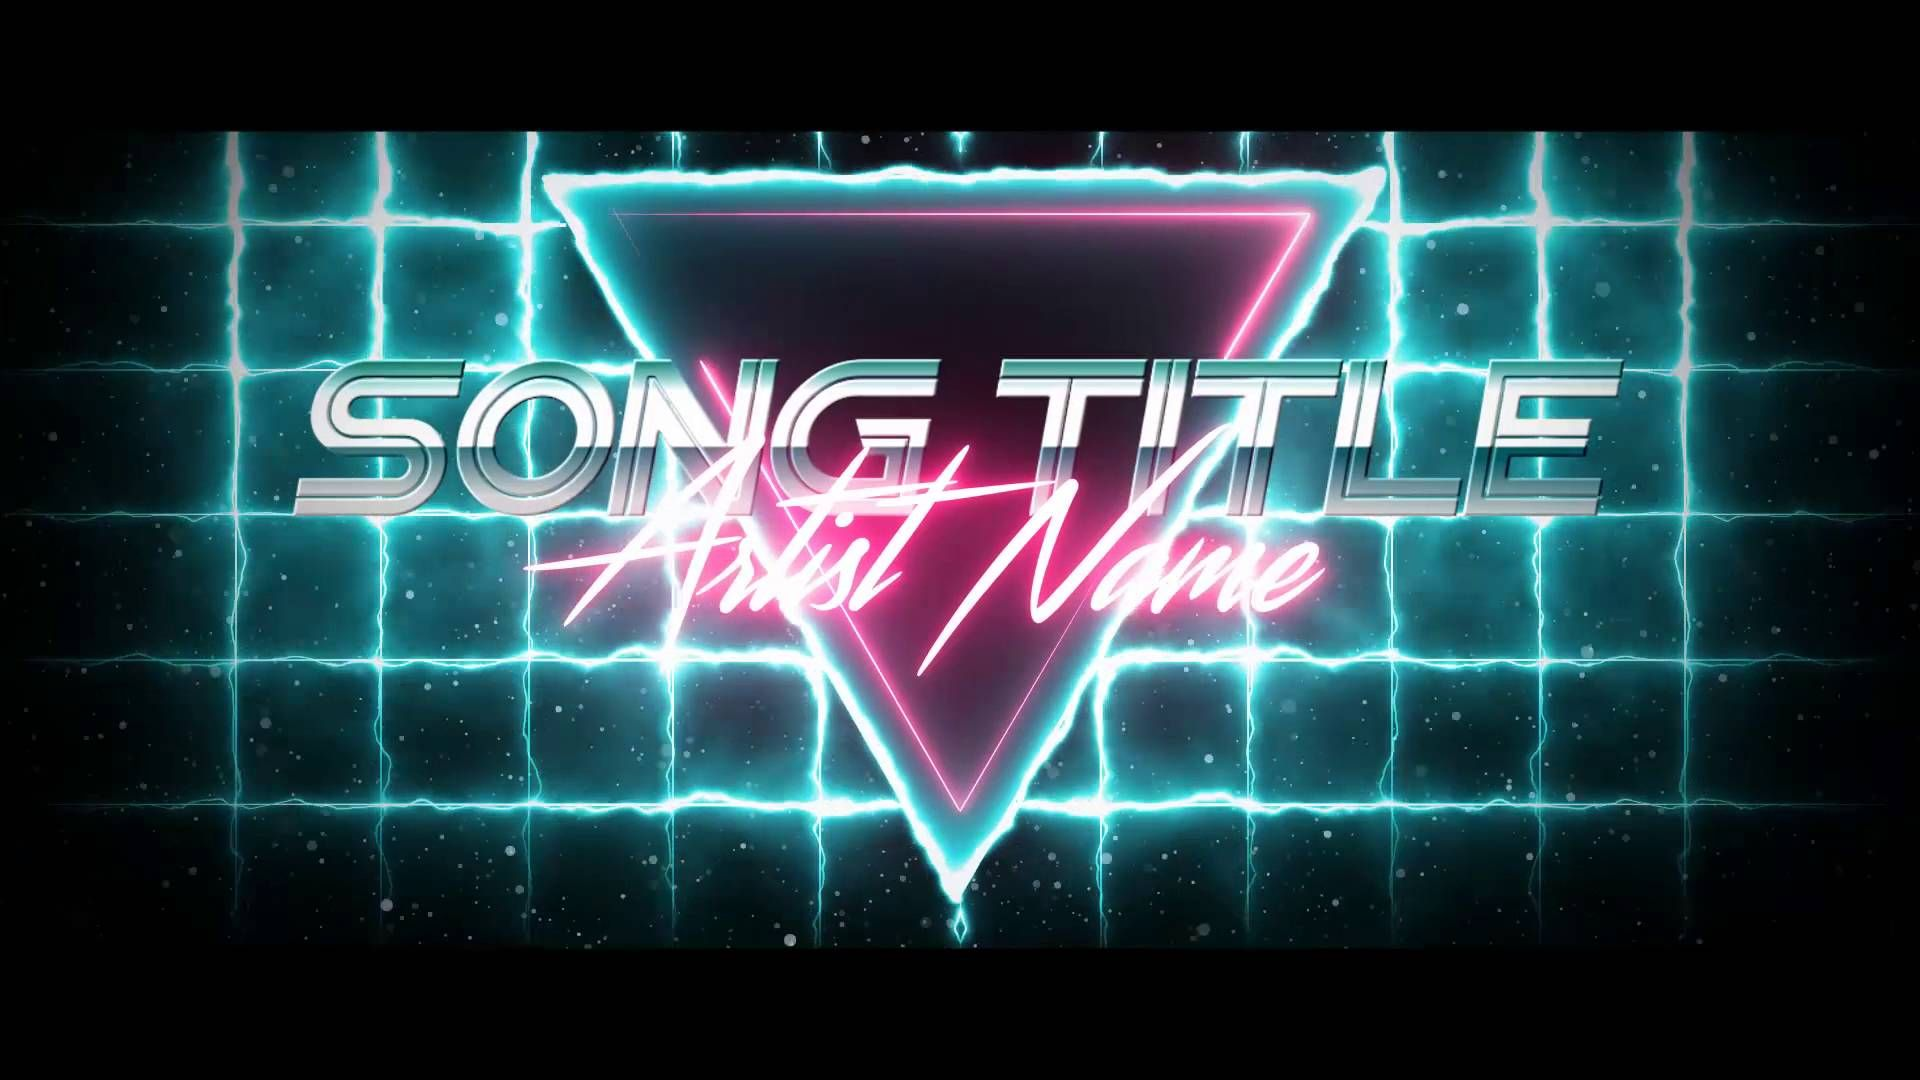 The Grid 80 S Visualizer Free After Effects Cs6 Template Dance